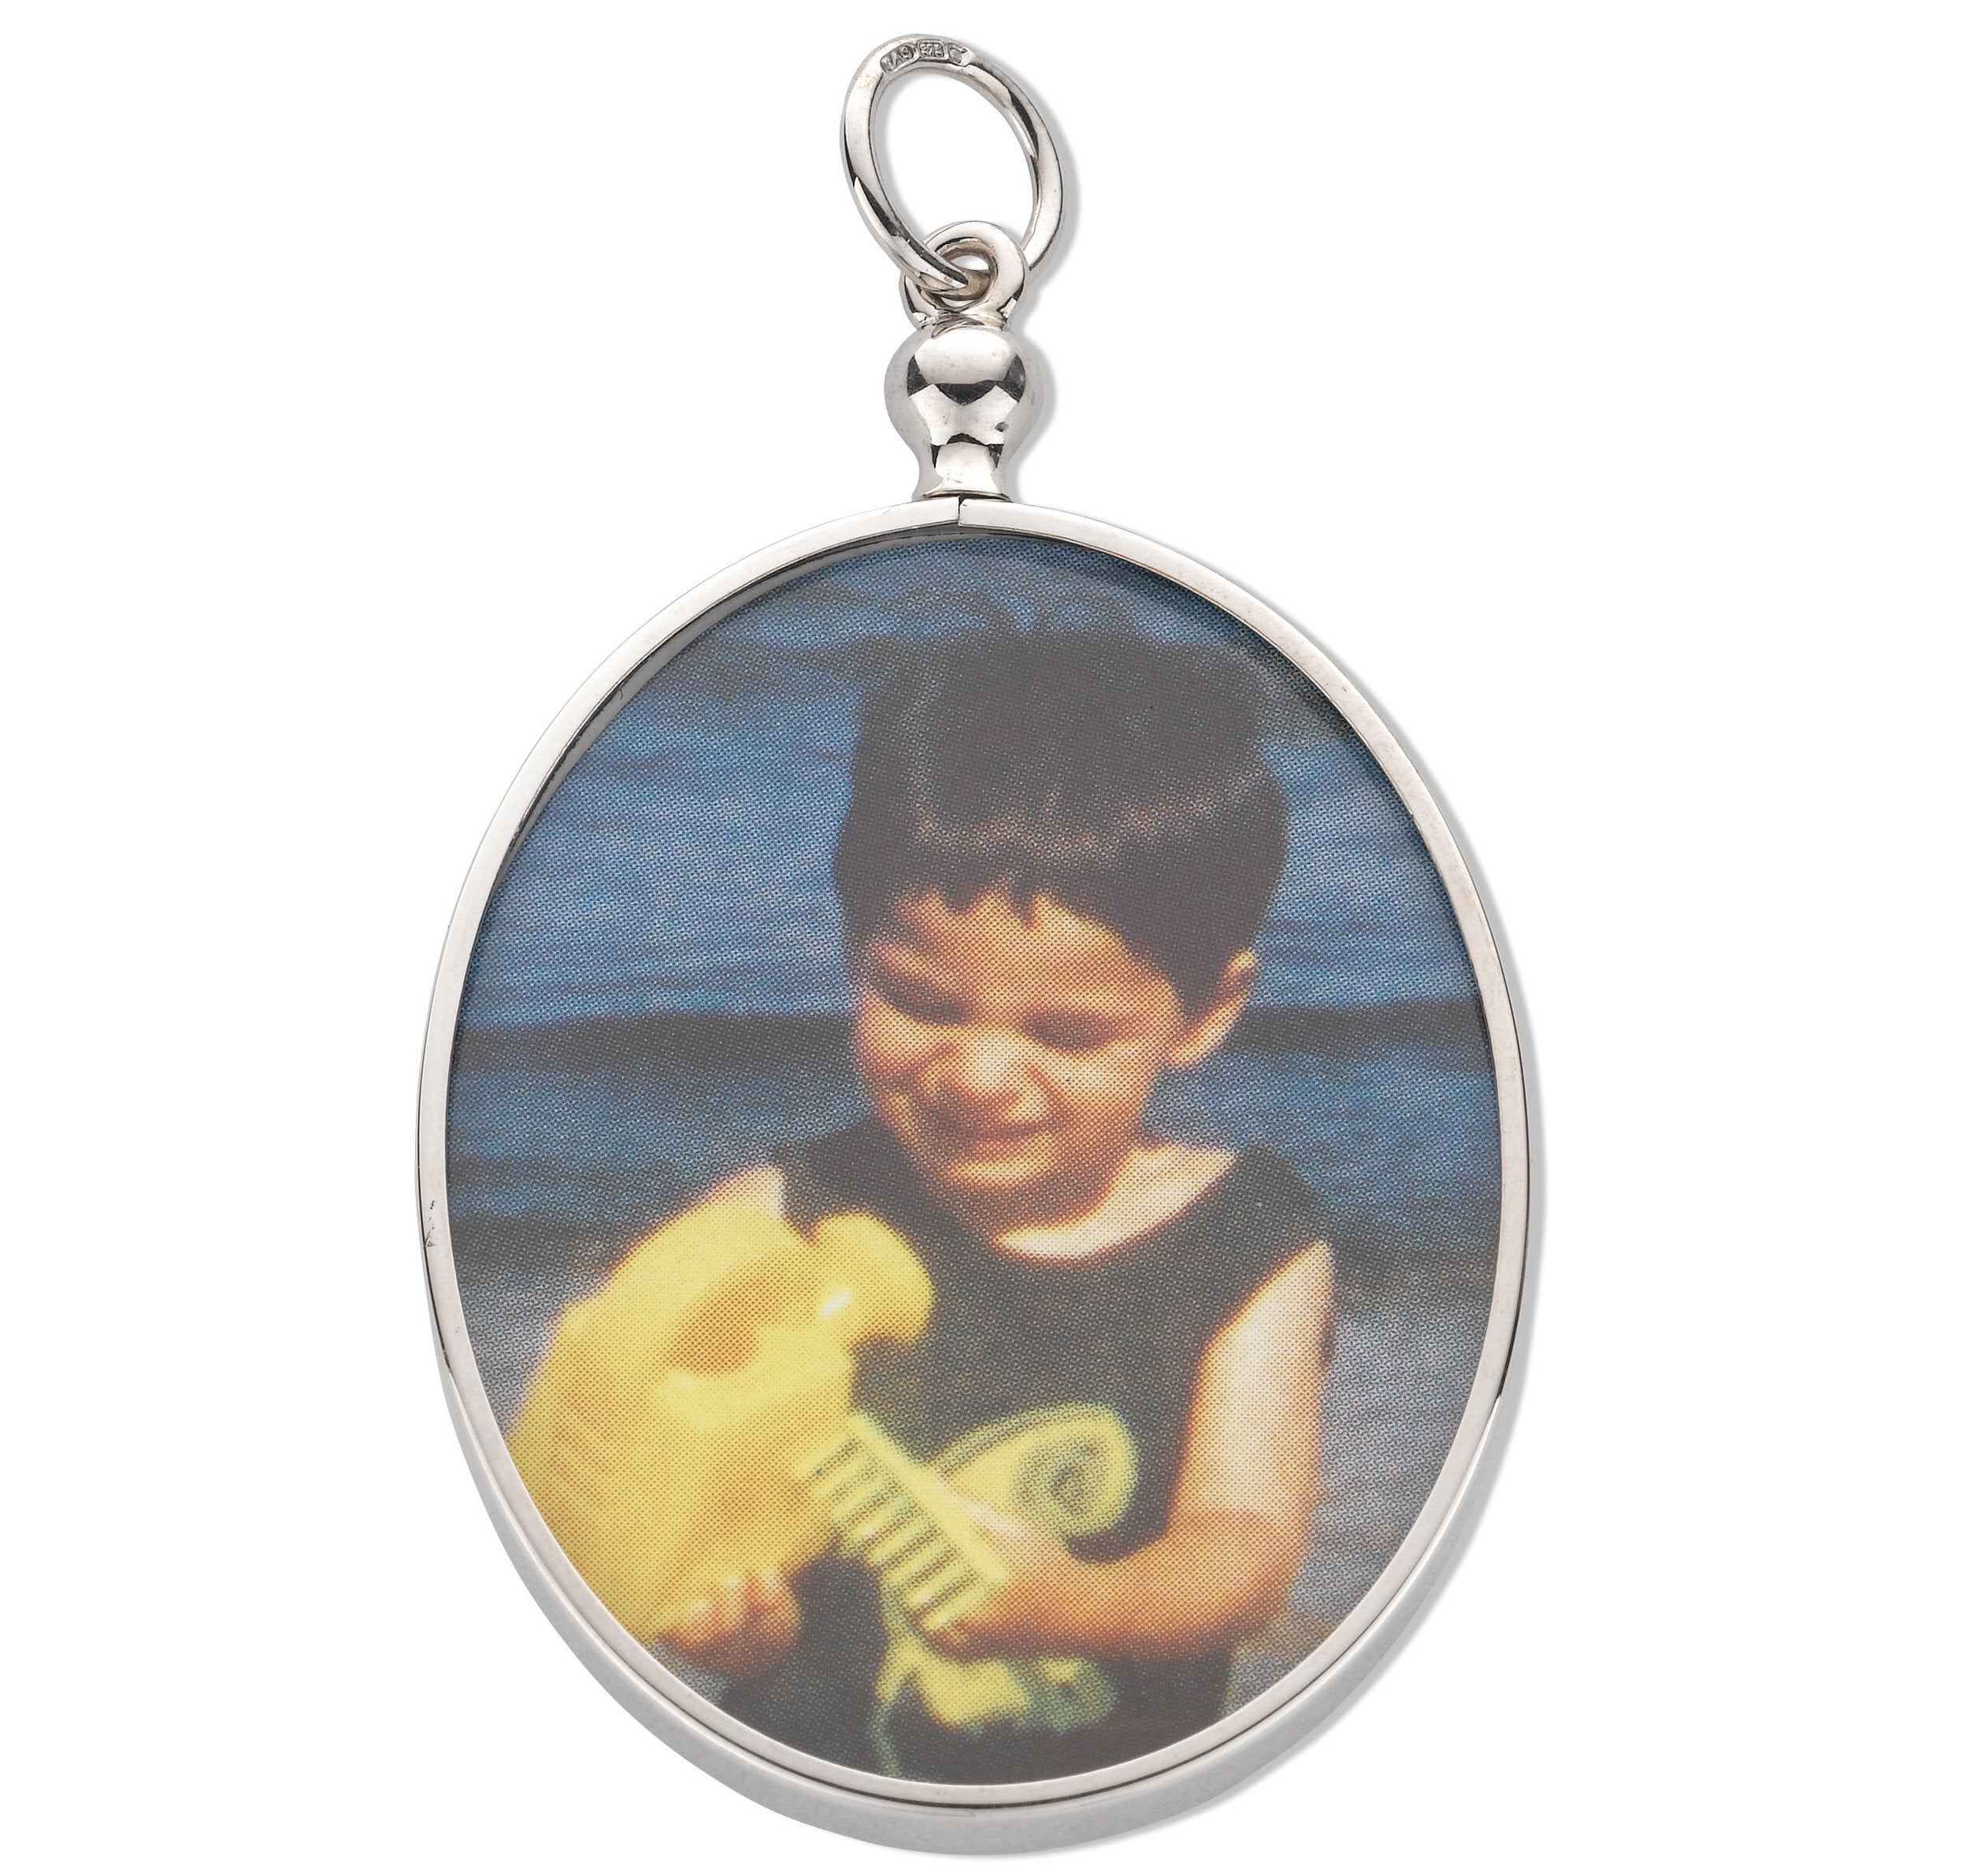 925 sterling silver double sided 2 photo picture frame pendant 925 sterling silver double sided 2 photo picture frame pendant oval round jeuxipadfo Image collections